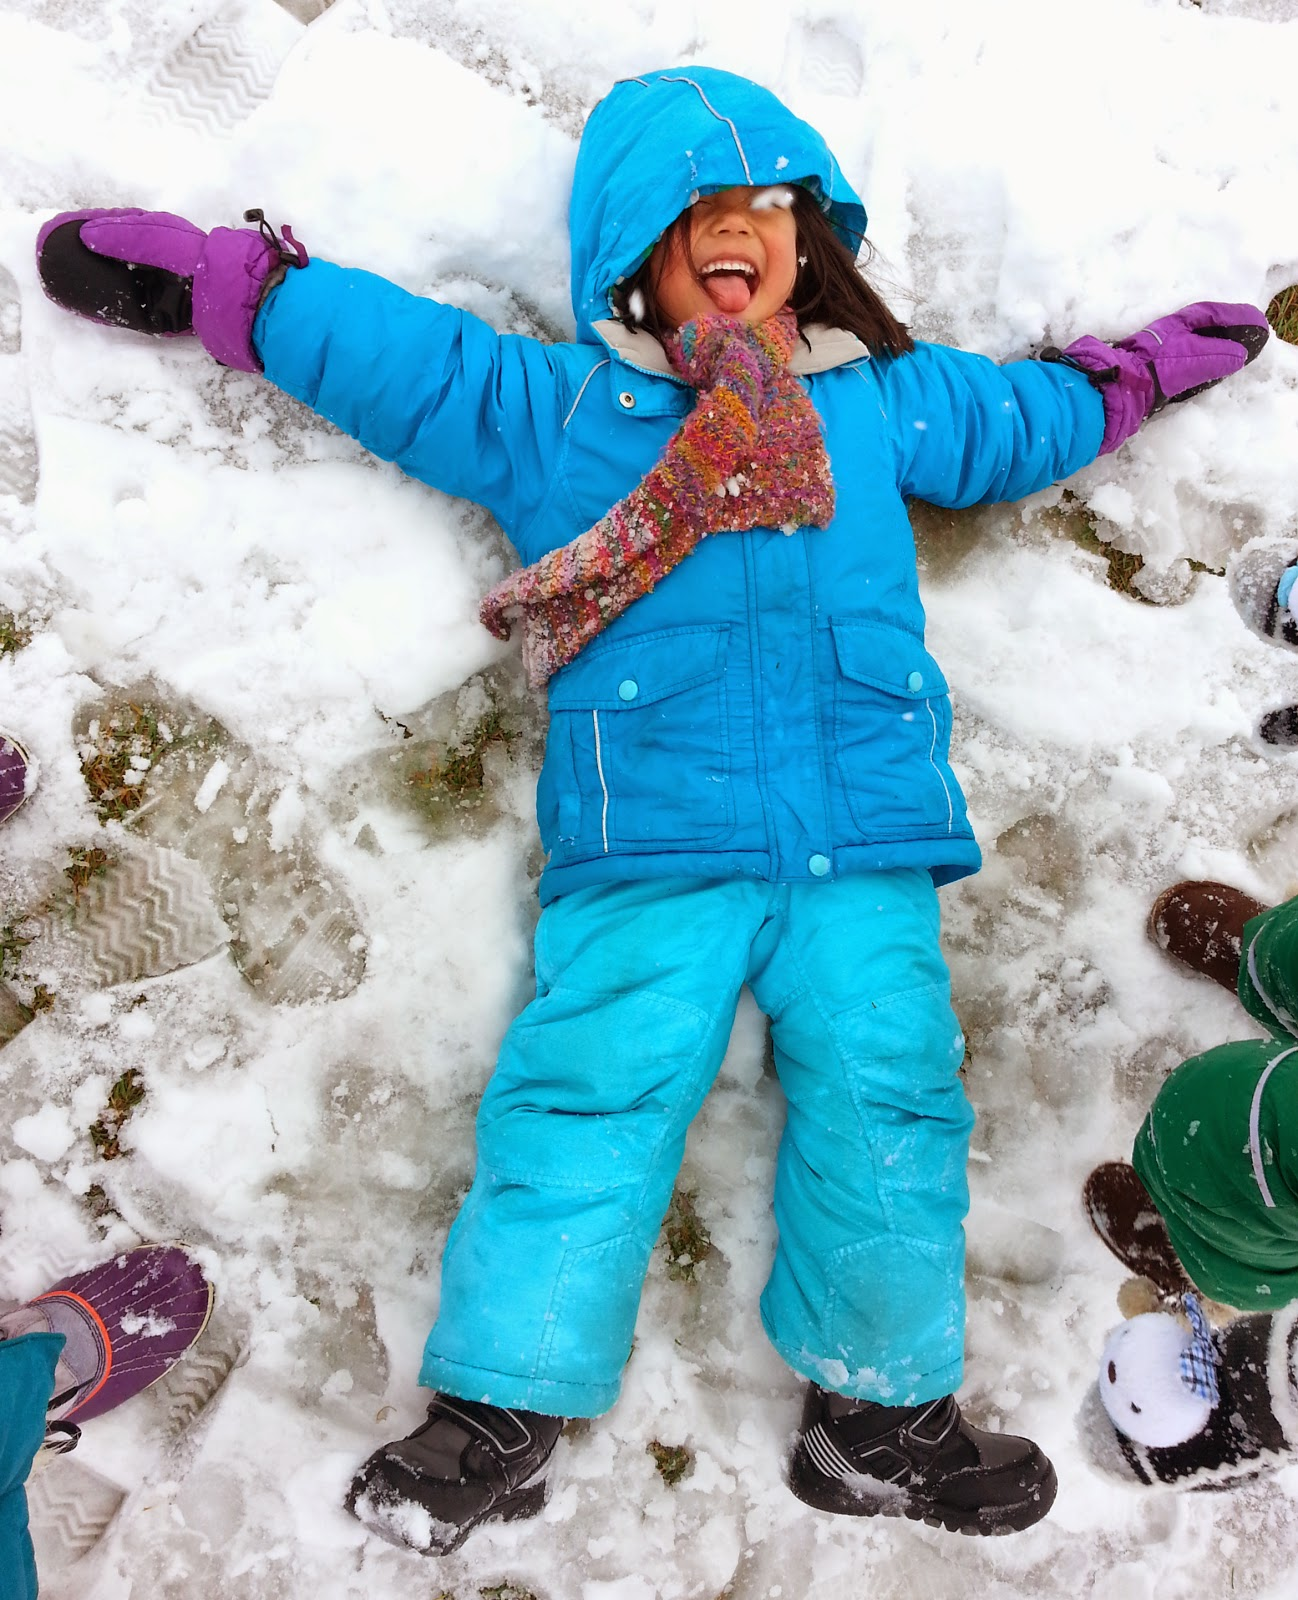 Snow is here. Please bring and label: A hat, mittens, a snow suit or snow jacket and pants, snow boots, and sunscreen for your child. The teachers will be bringing the kids outside everyday that weather allows.